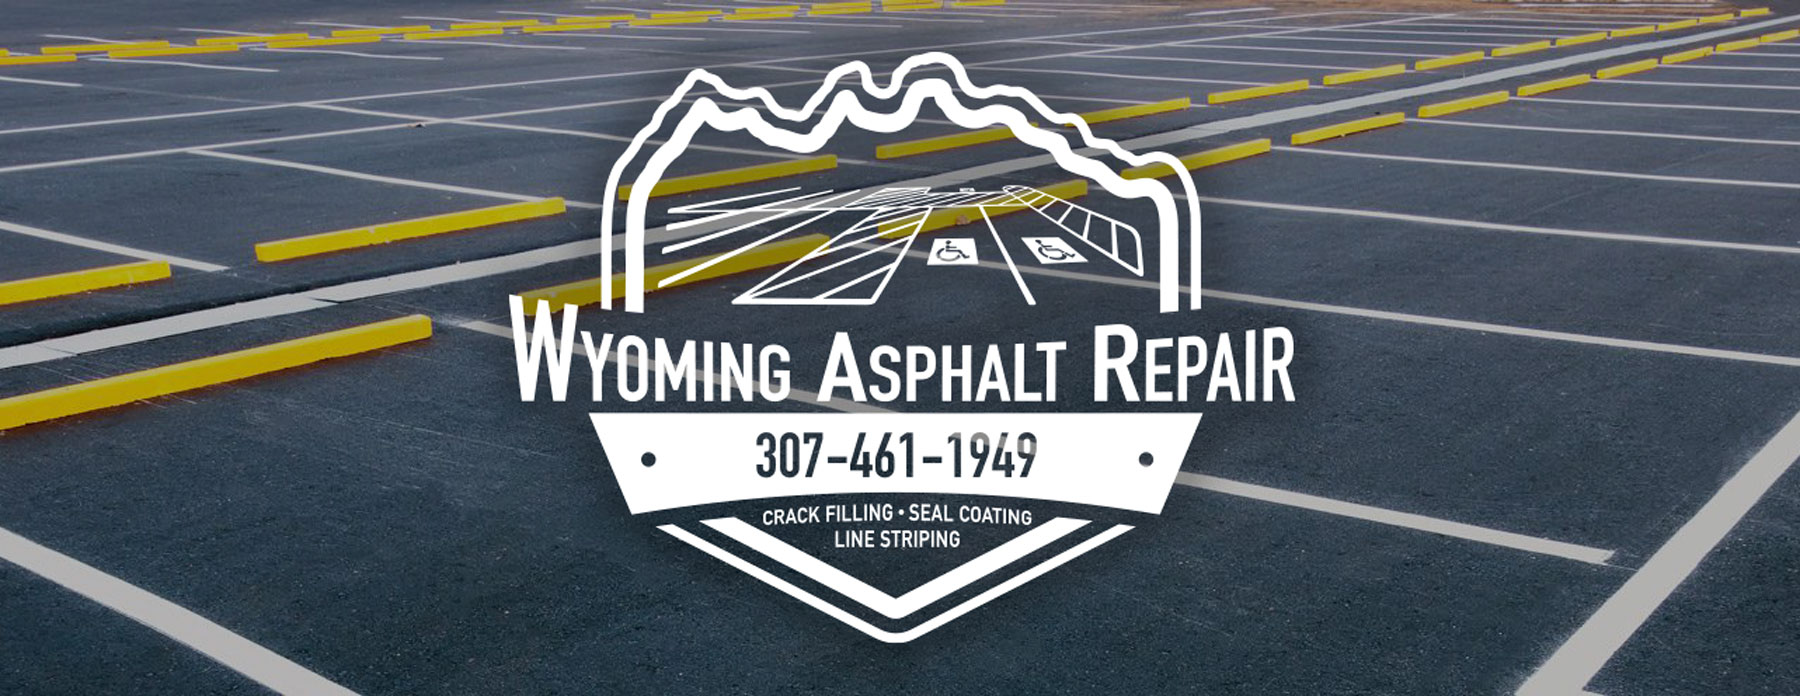 Wyoming Asphalt Repair logo graphic design